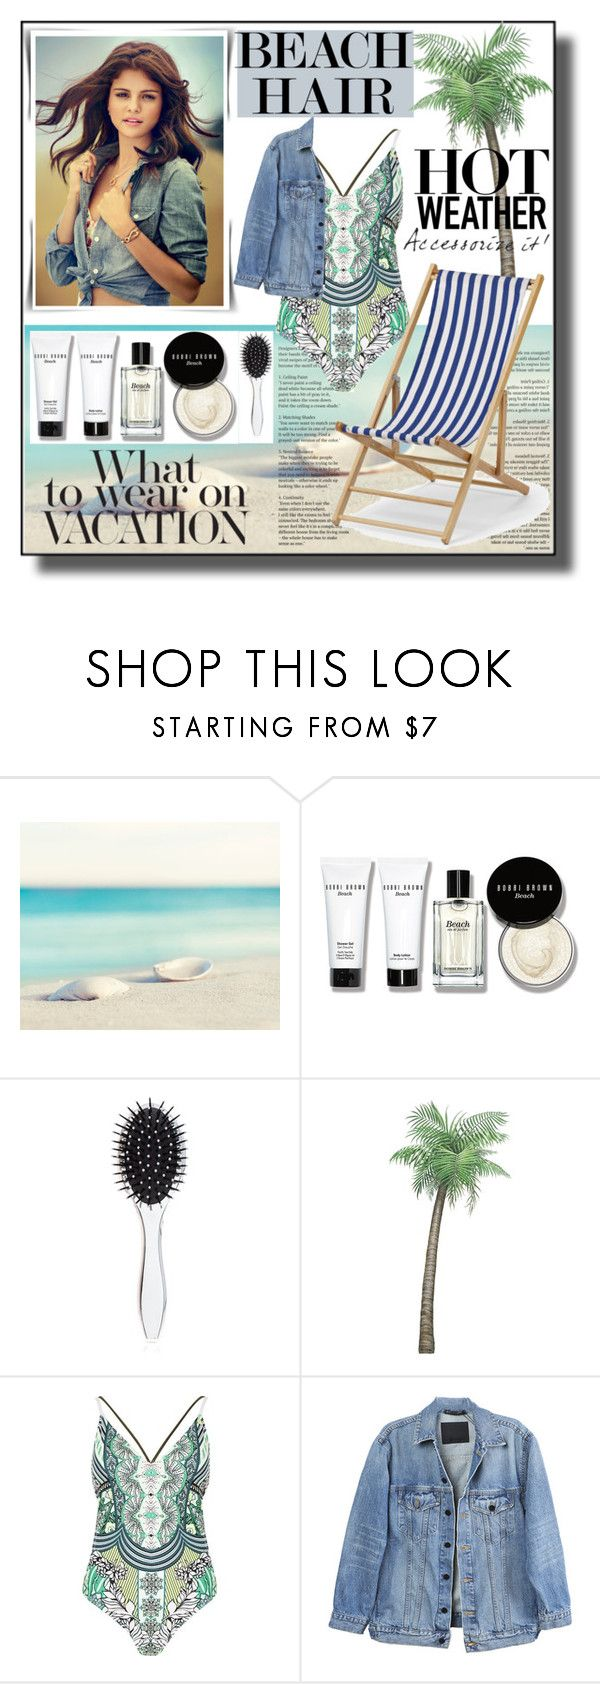 """Perfect Beach Hair"" by asiyaoves ❤ liked on Polyvore featuring beauty, Bobbi Brown Cosmetics, New Look, River Island, Y/Project, Telescope Casual and beachhair"